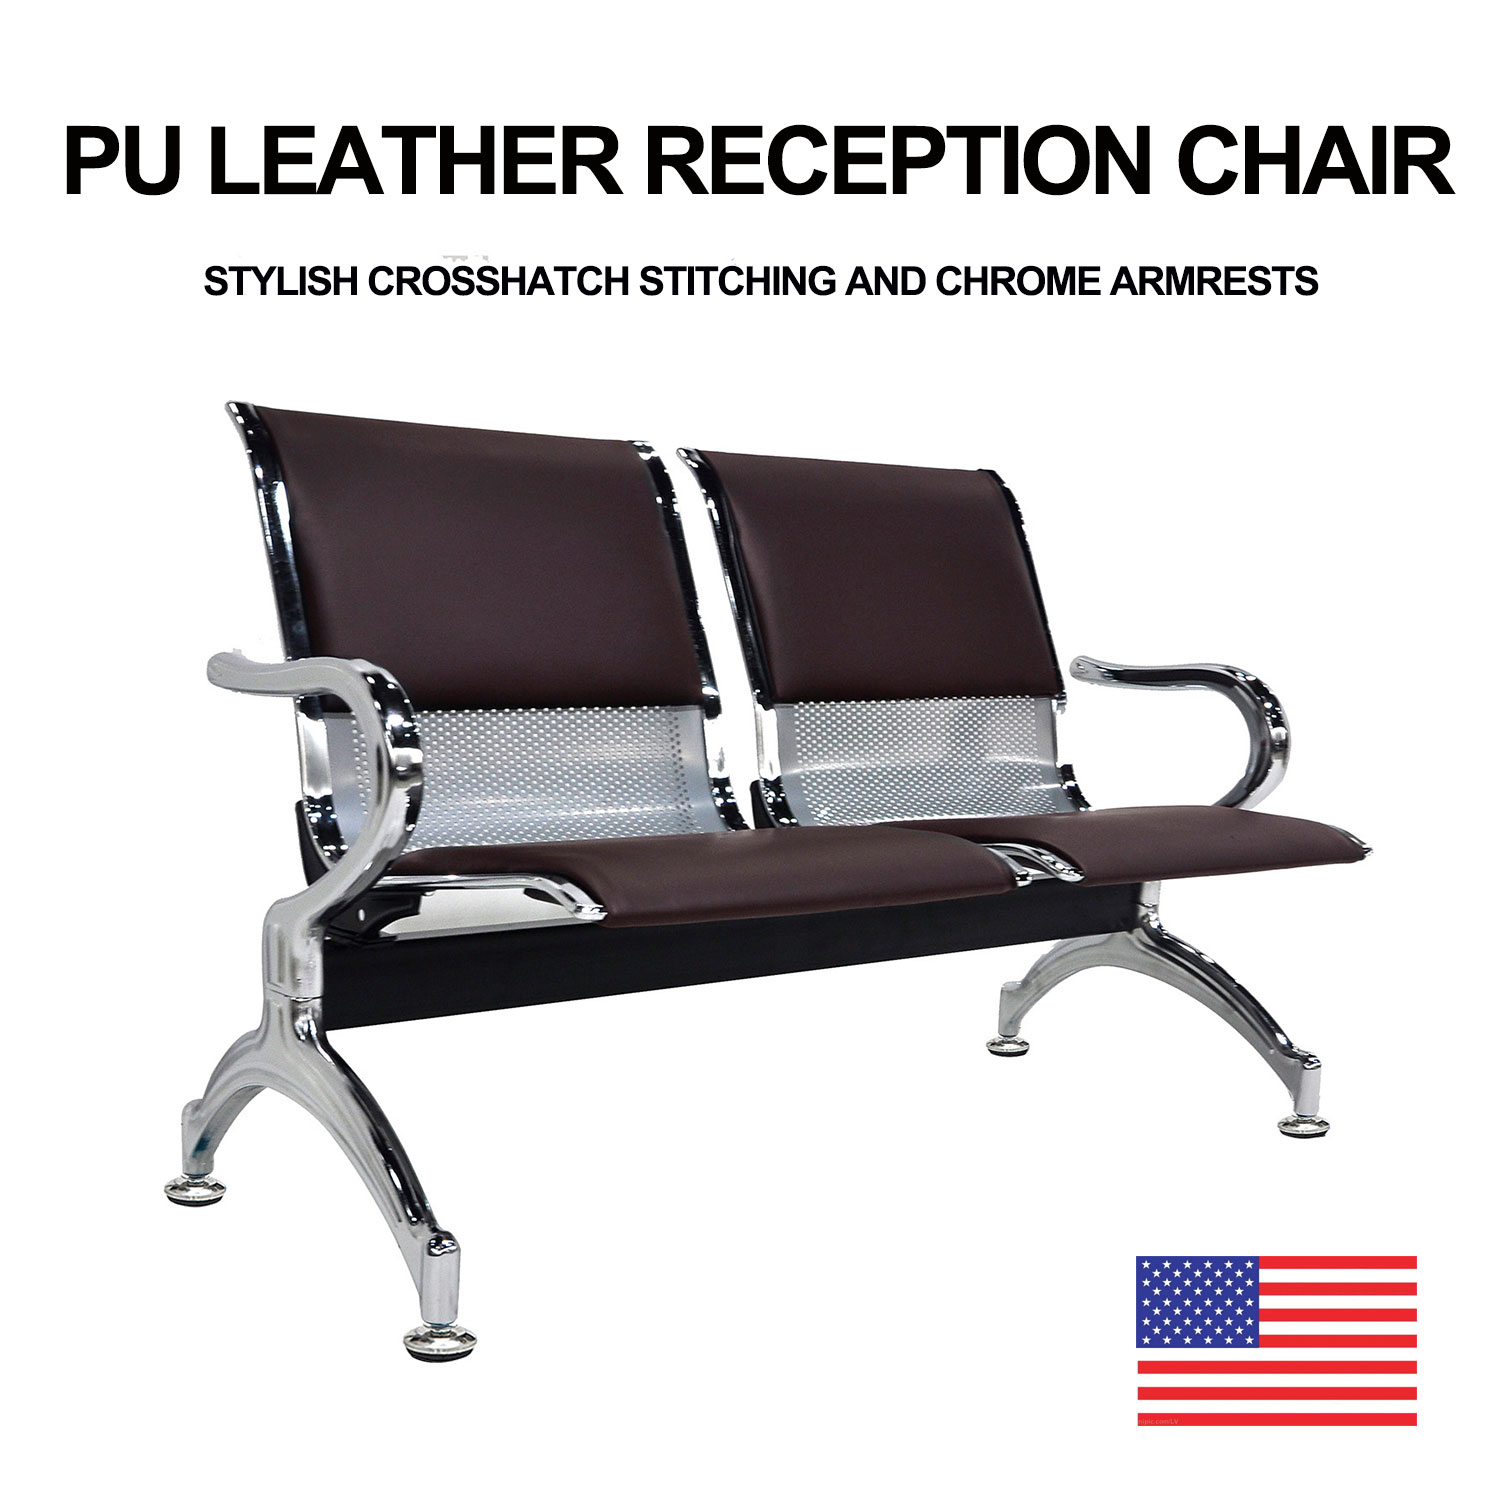 Swell Details About 2 Seat Bench Airport Heavy Duty Waiting Room Chair Brown Pvc Leather Cushion Short Links Chair Design For Home Short Linksinfo